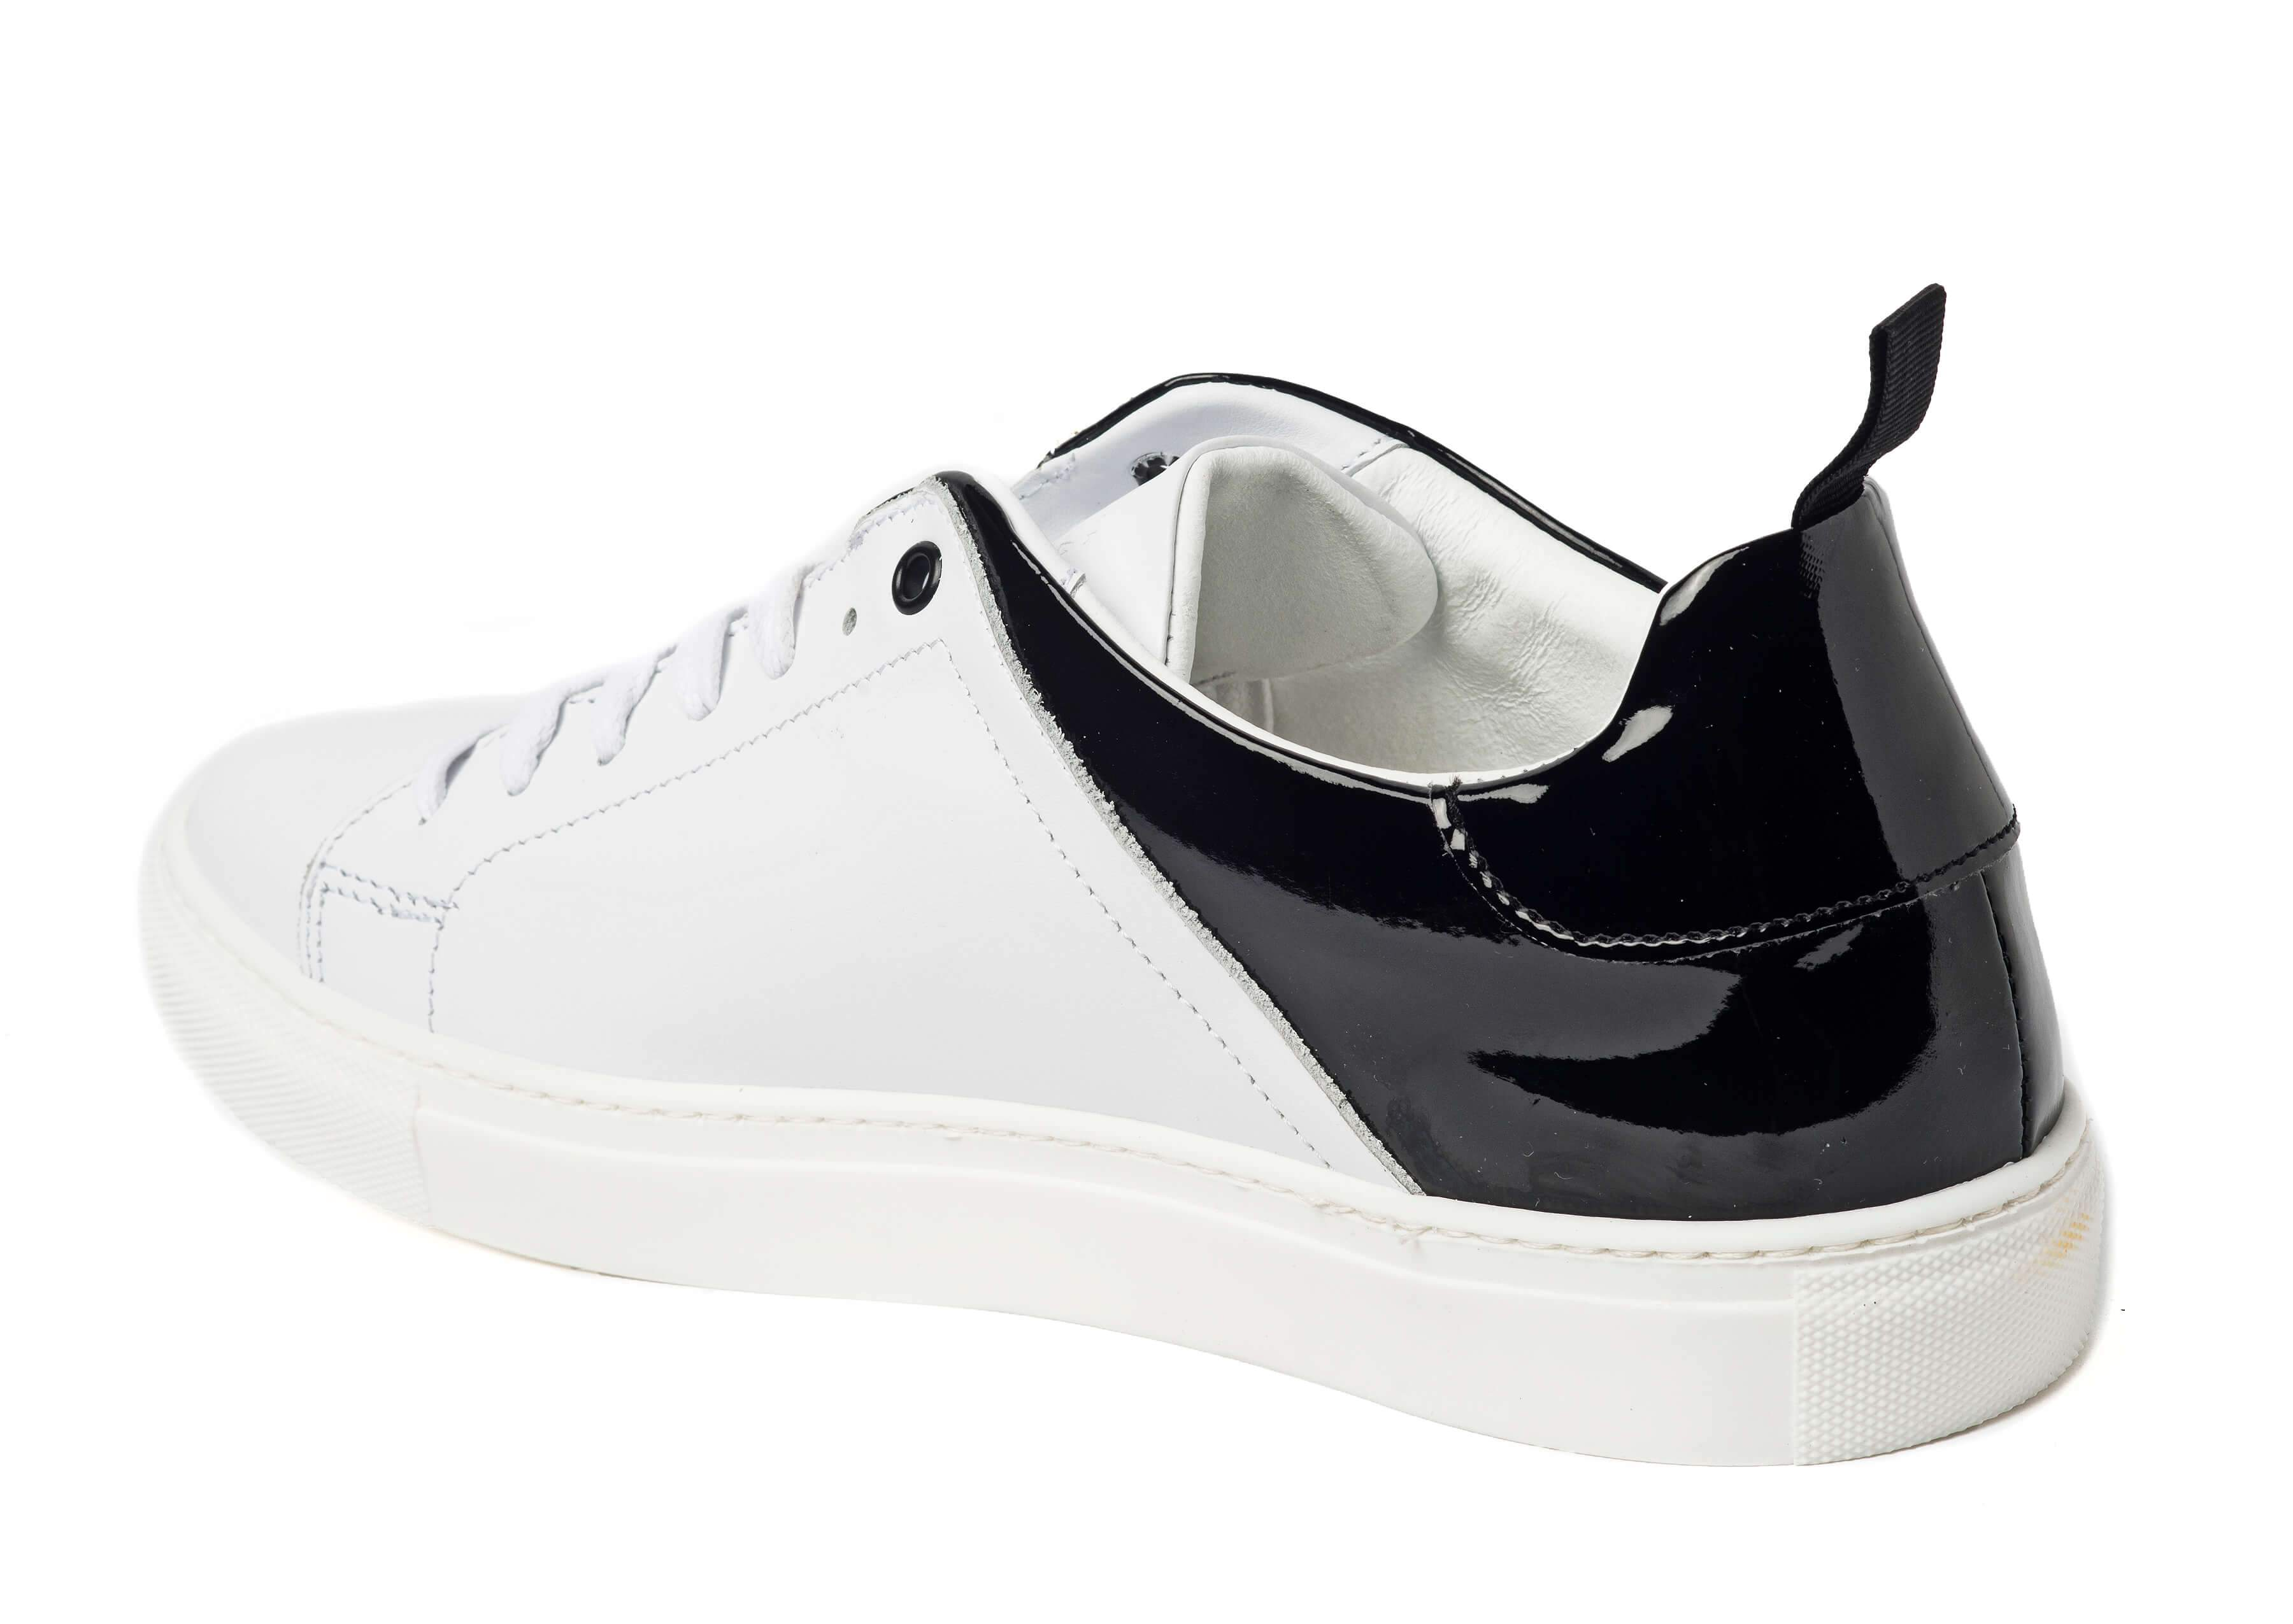 White Black Sneakers for Men - Left 3838-WHB - Jared Lang